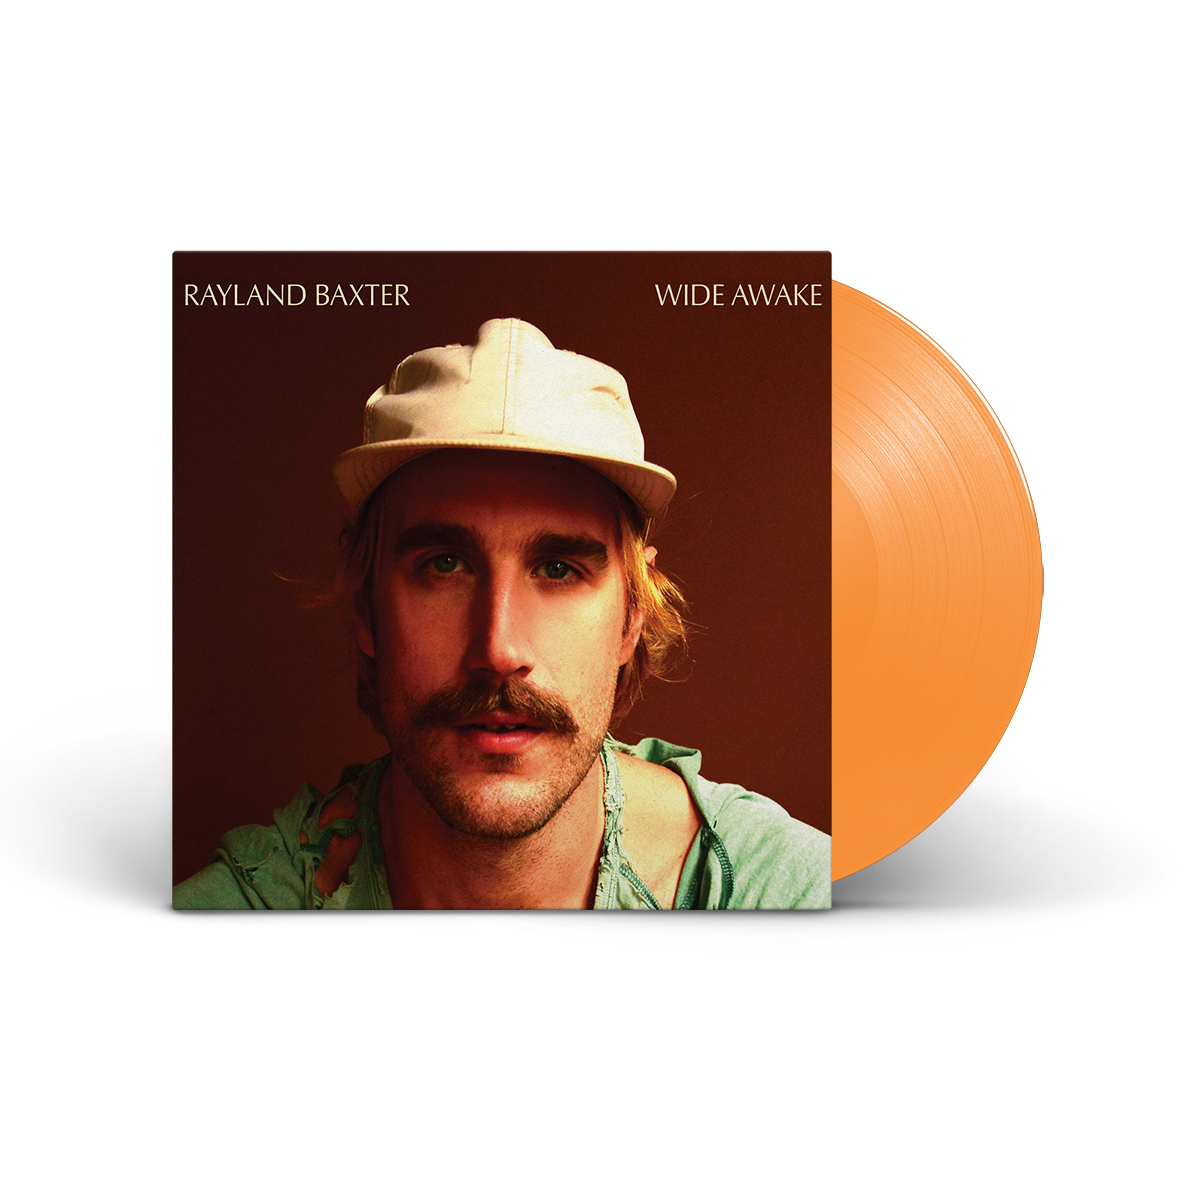 Rayland Baxter – Wide Awake (Orange Vinyl)